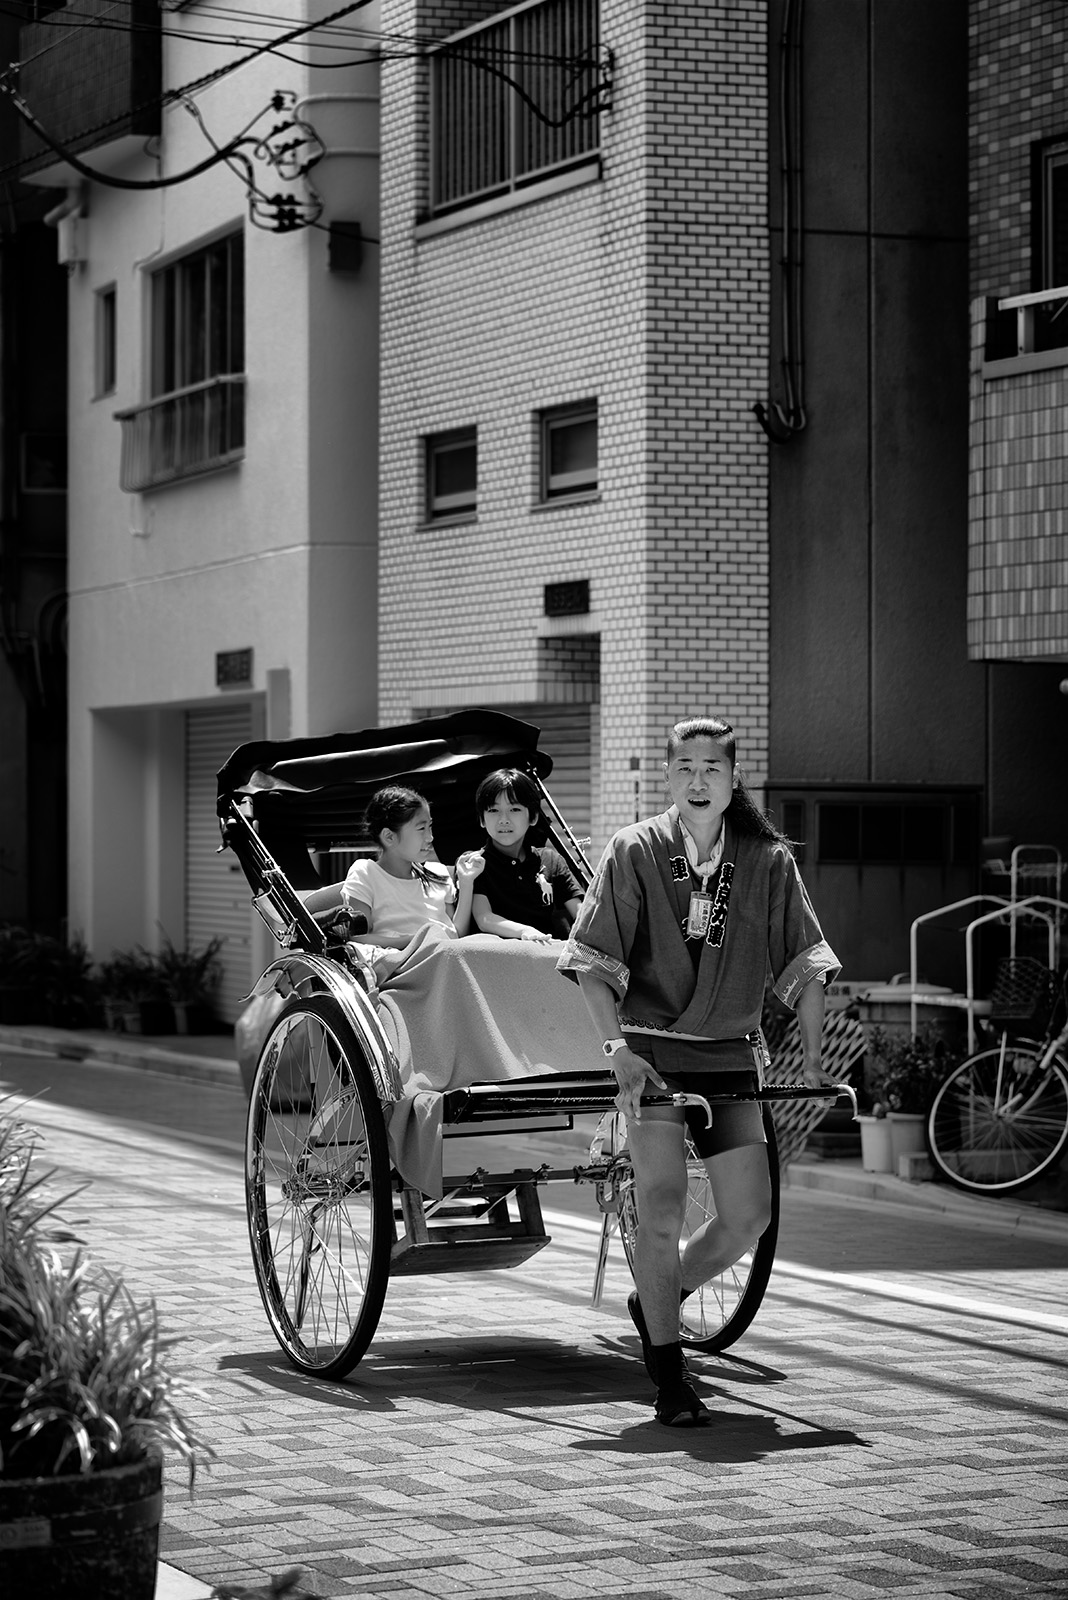 "Photo: Jinrikisha  Yes, another one from the #GPlus2YearAnniversary  photowalk.  Almost finished going through them though.  (^^;  I've seen these ""jinrikisha"" around the Asakusa area, but though it looks like fun, I've never tried it riding in one myself.  I know it's odd because it's their job, but I would always feel sorry for someone who had to pull me around! That, and it's a little expensive...  Off to bed, good night from Tokyo!  Settings: D800E / 105mm / f4 / ISO 100 / 1/500s  #Japan   #Tokyo   #Asakusa   #Jinriksha"